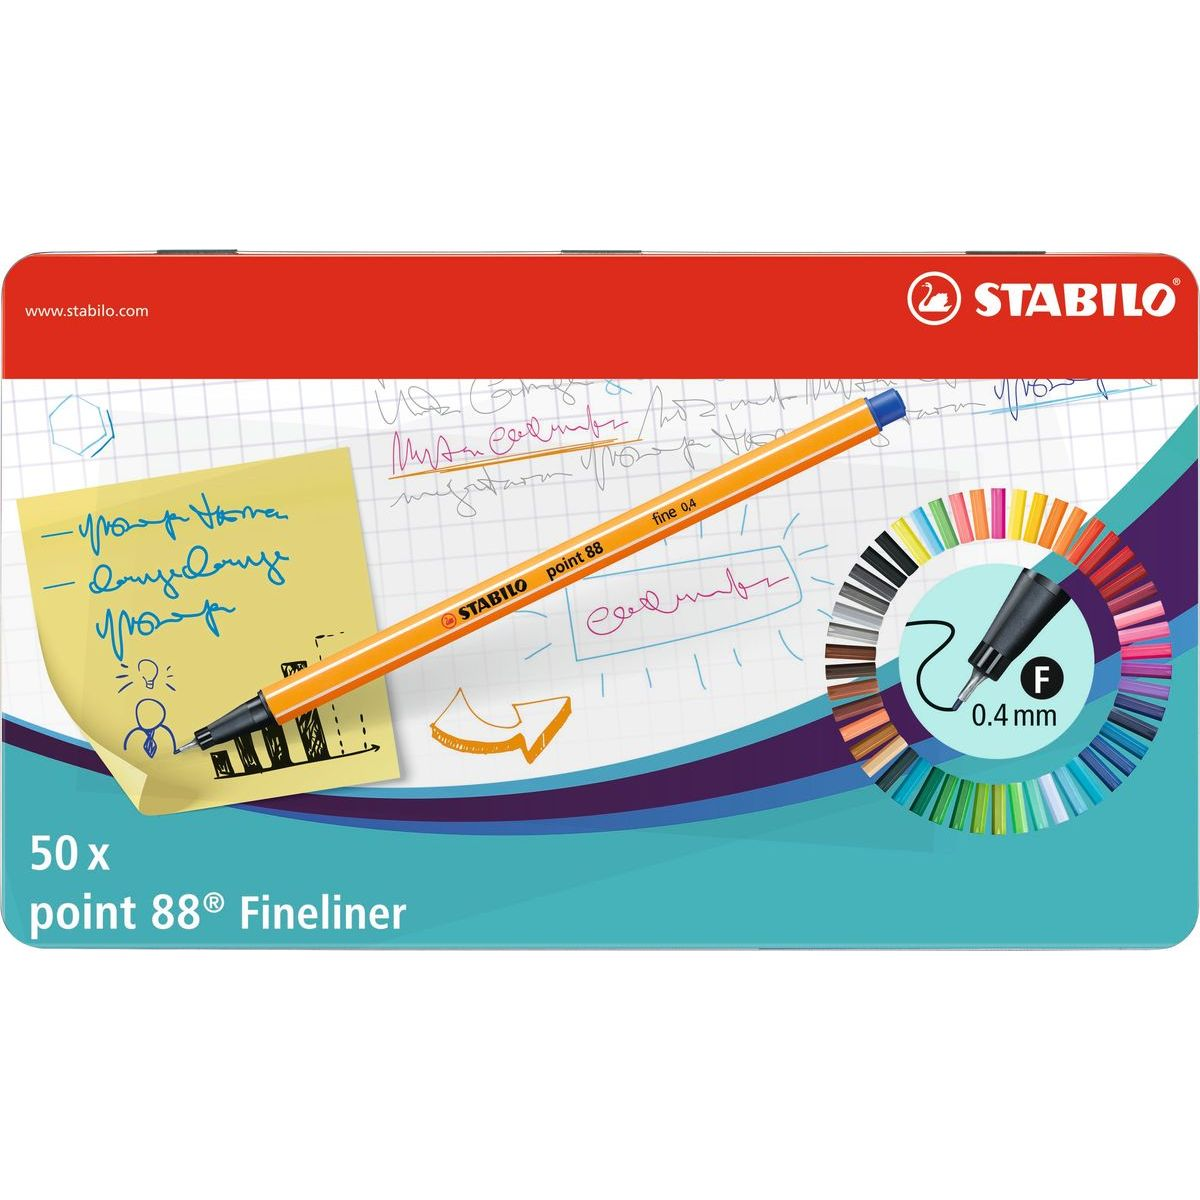 Stabilo point 88 50 ks metal box